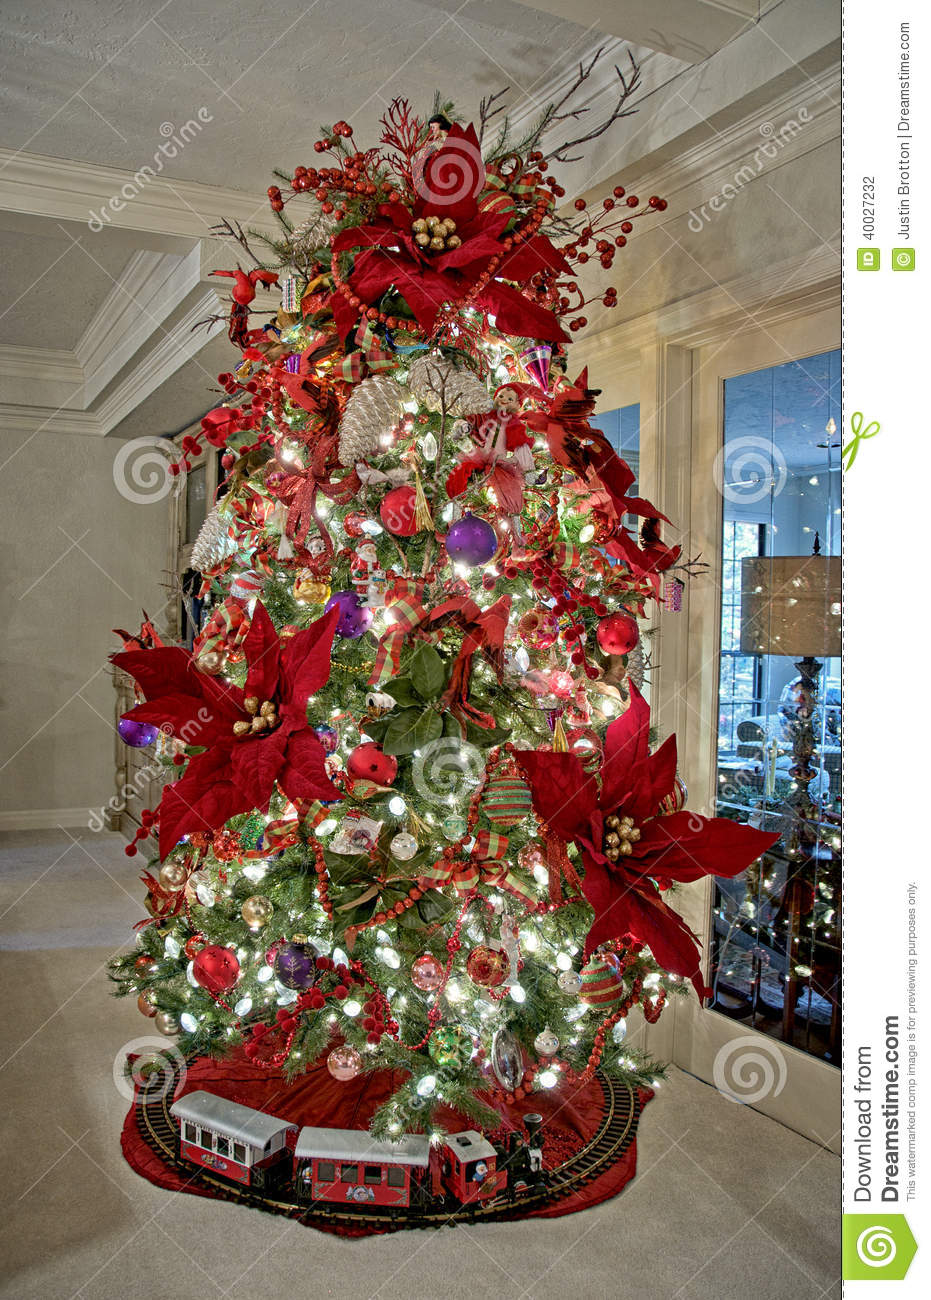 this is a christmas tree decorated with ornaments with poinsettia flowers - Christmas Tree Flower Decorations